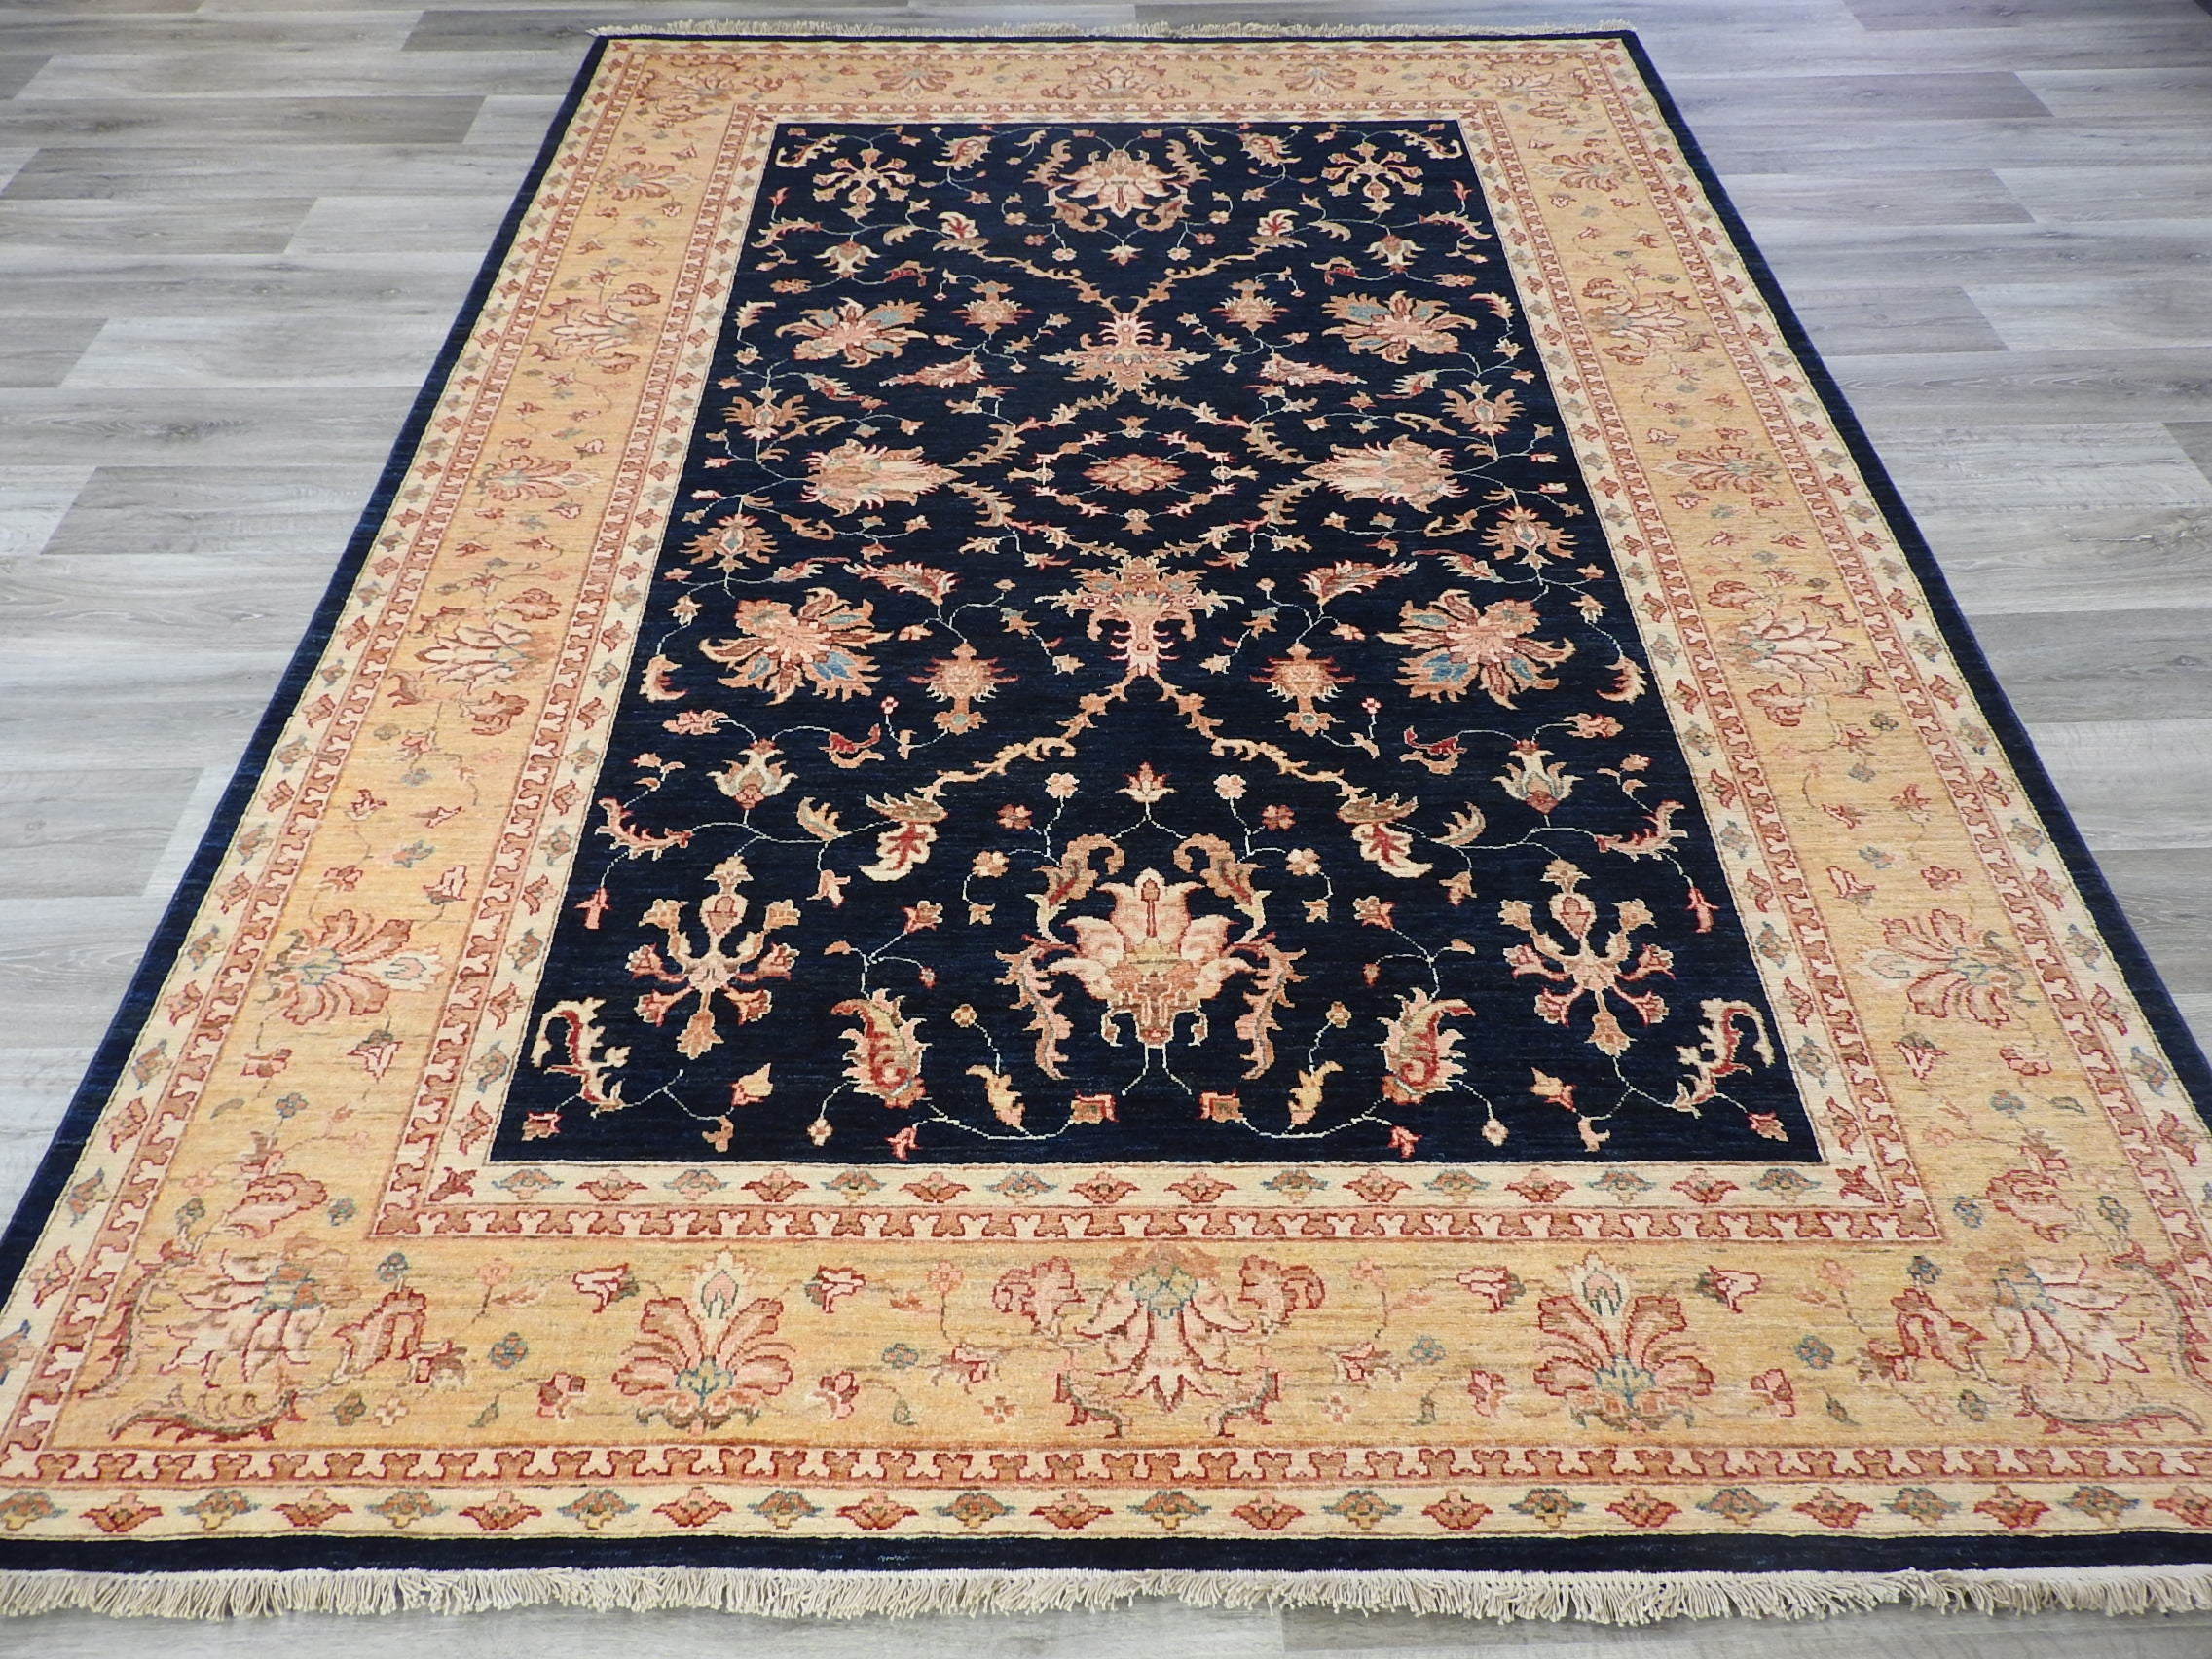 Afghan Hand Knotted Choubi Rug Size: 300 x 214cm